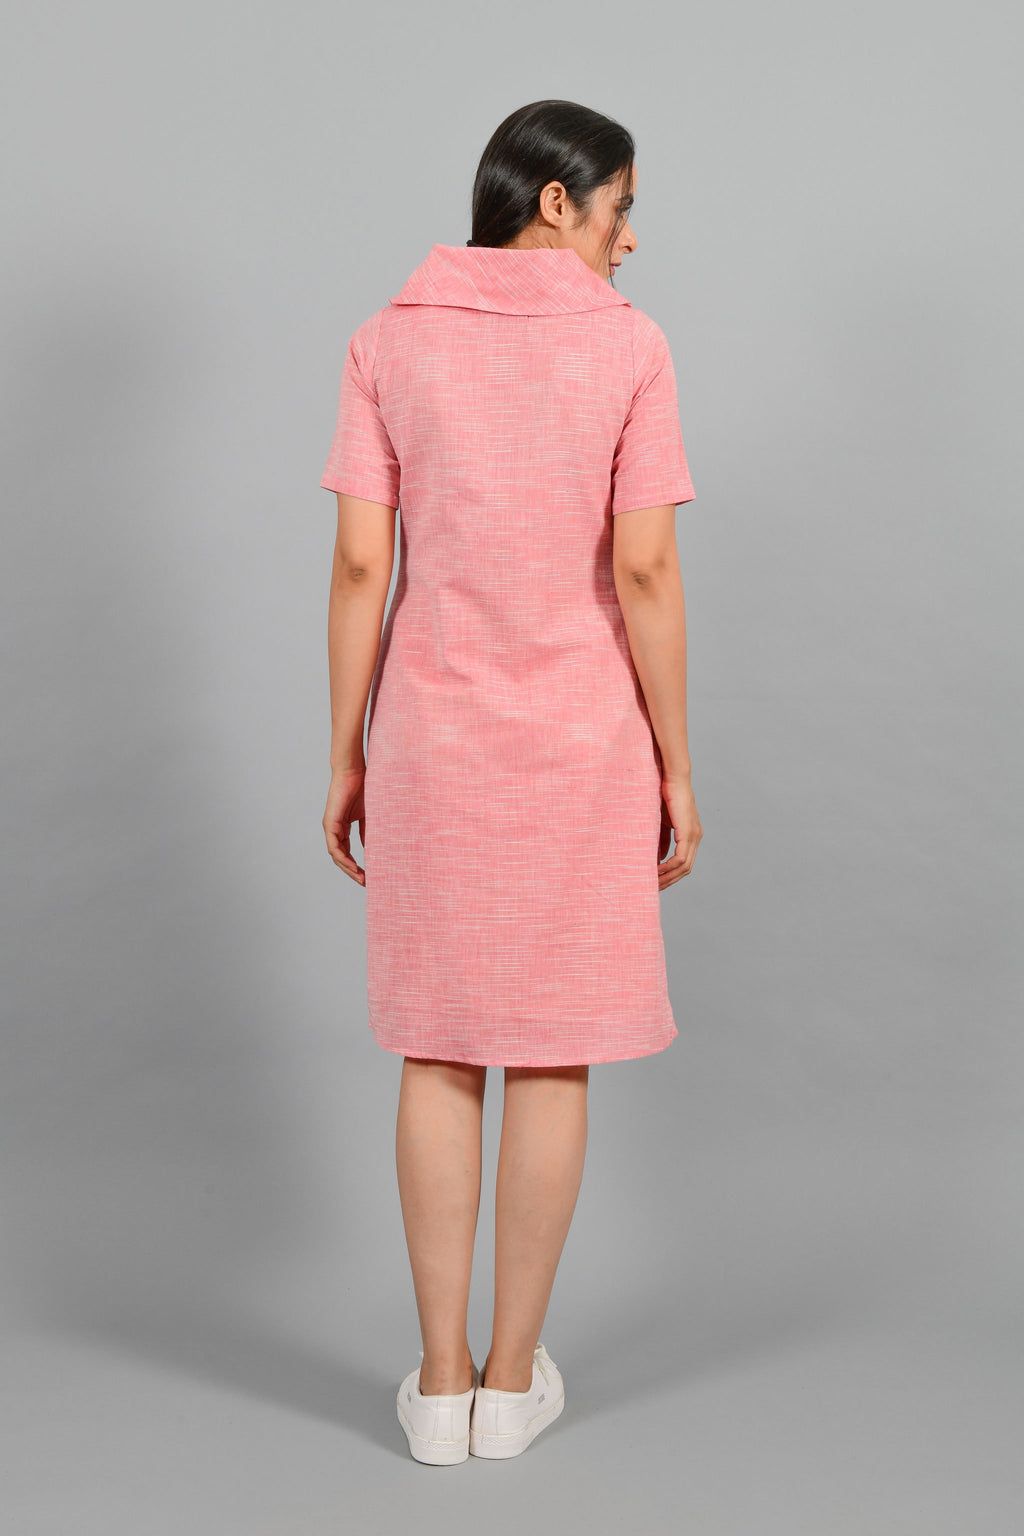 Back pose of an Indian female womenswear fashion model in a Pink and White space dyed cowl neck, elbow sleeve handspun and handwoven khadi cotton dress by Cotton Rack.